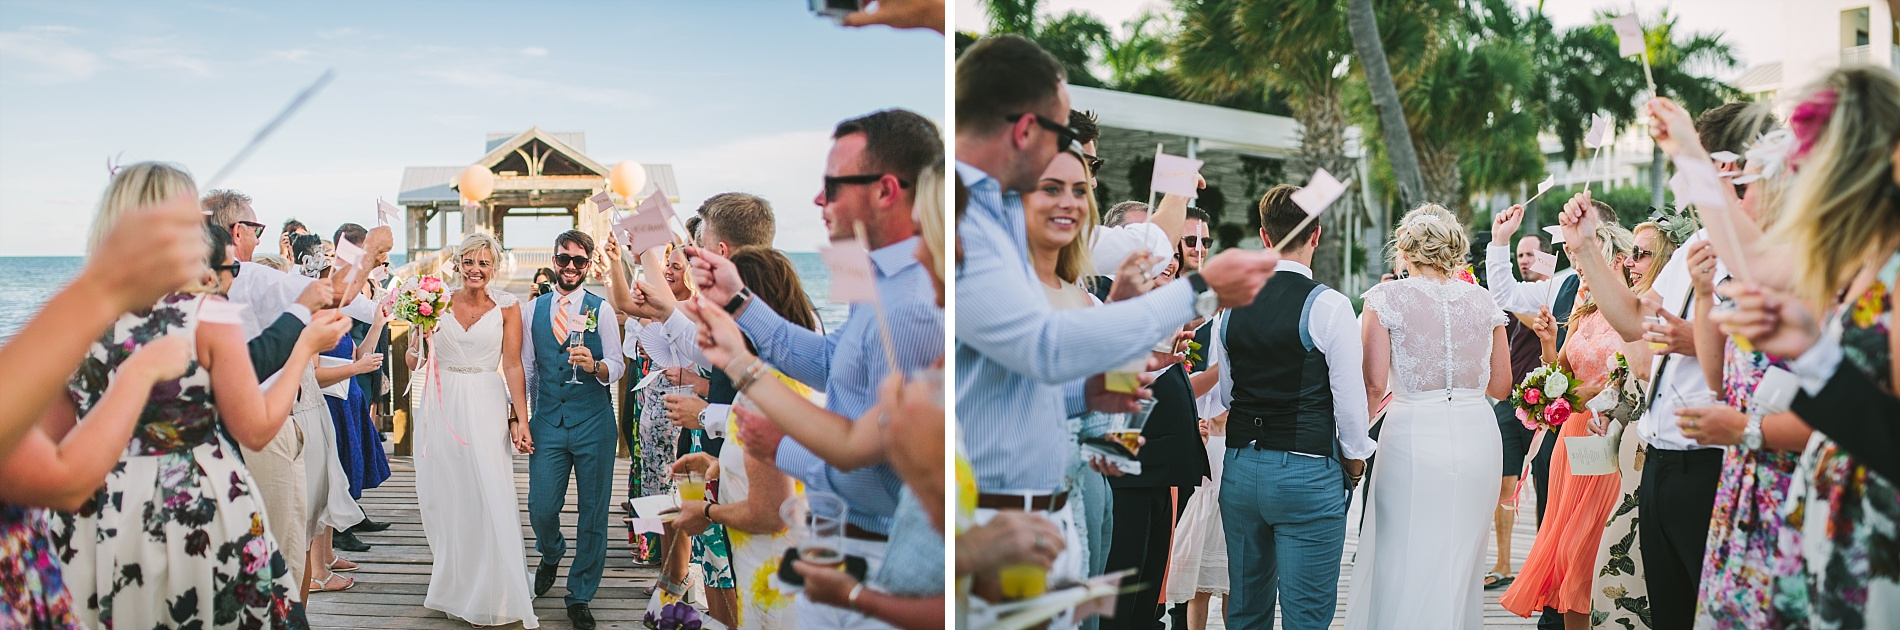 key west wedding photography 044